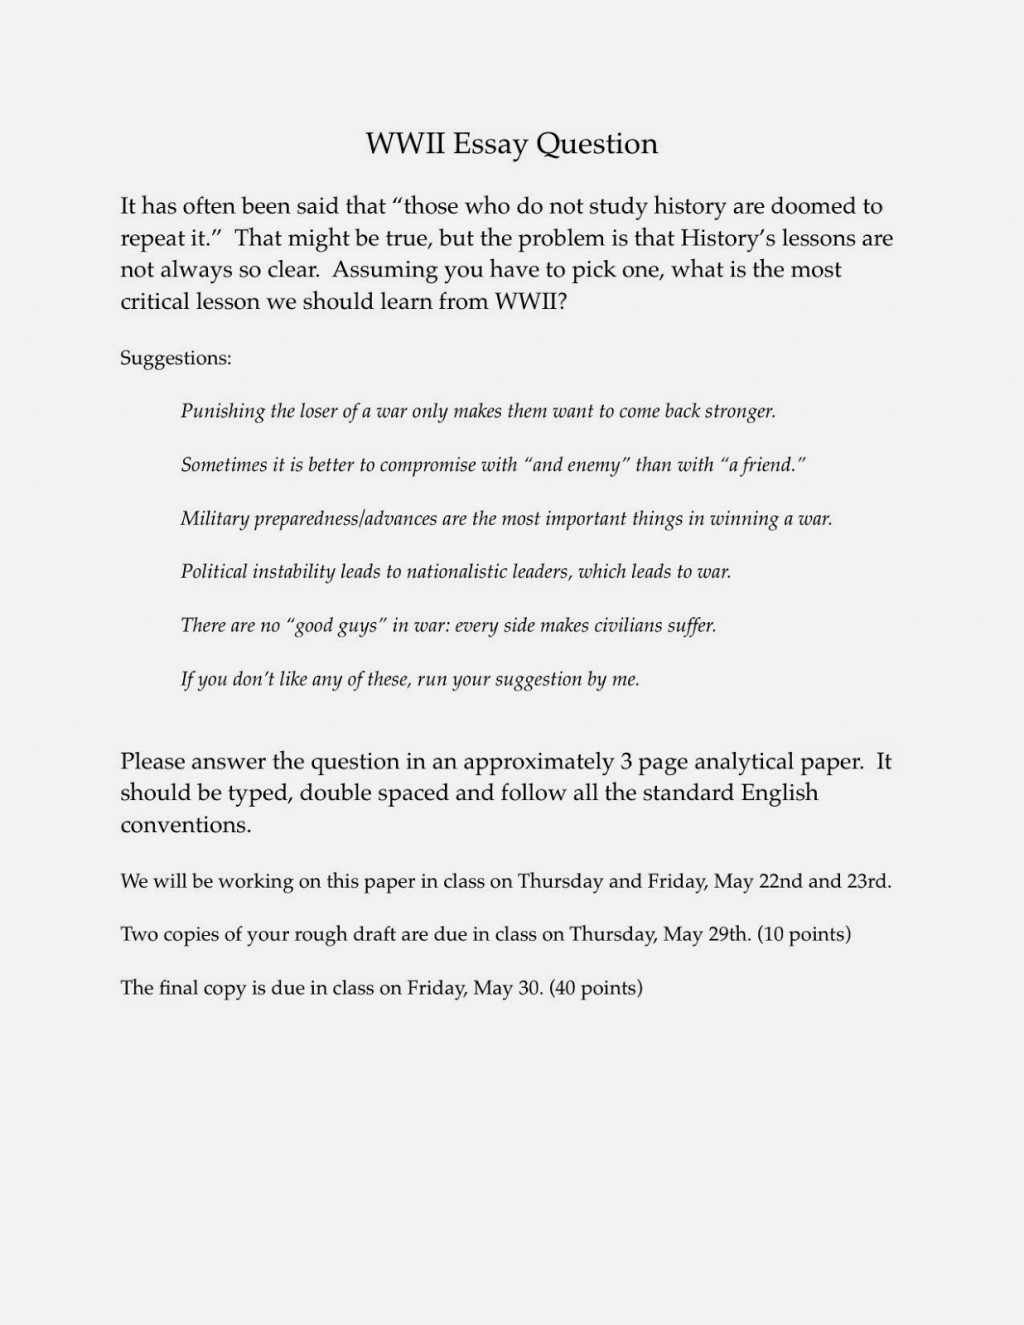 011 Pro Euthanasia Essay Example Breathtaking Conclusion Outline Large